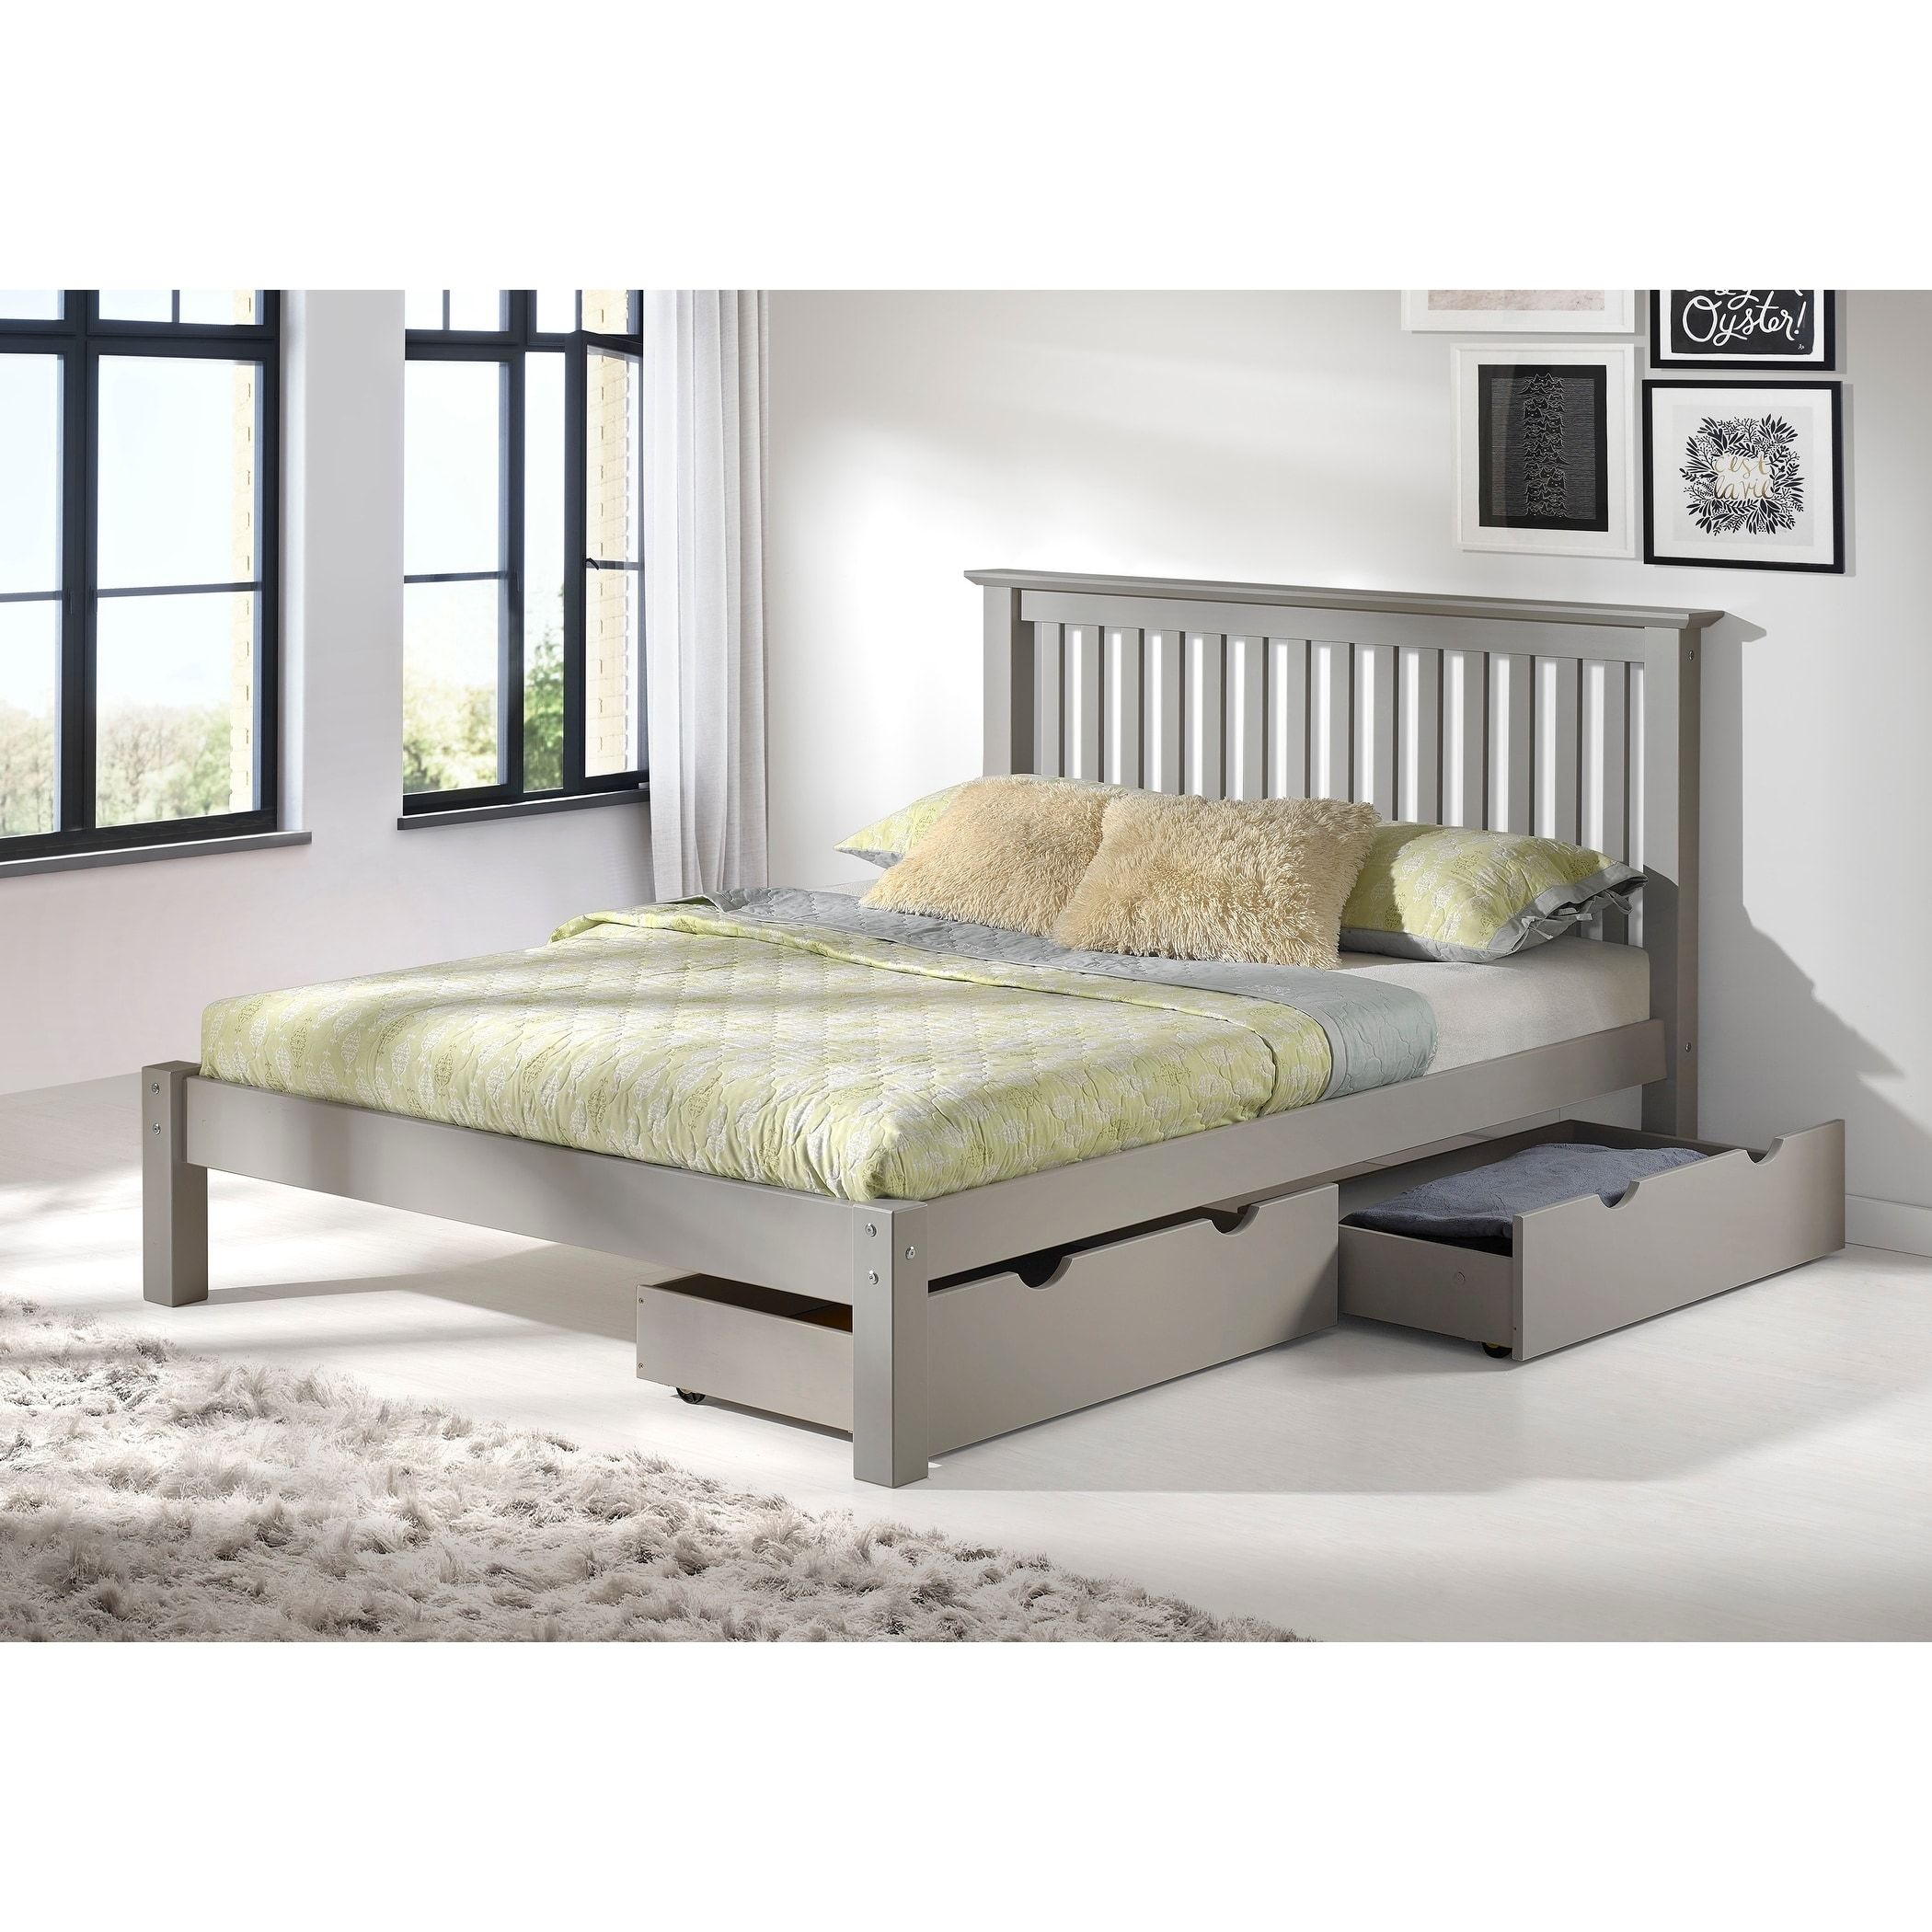 Bolton Furniture Girona Dove Grey Brazilian Pine Queensize Storage